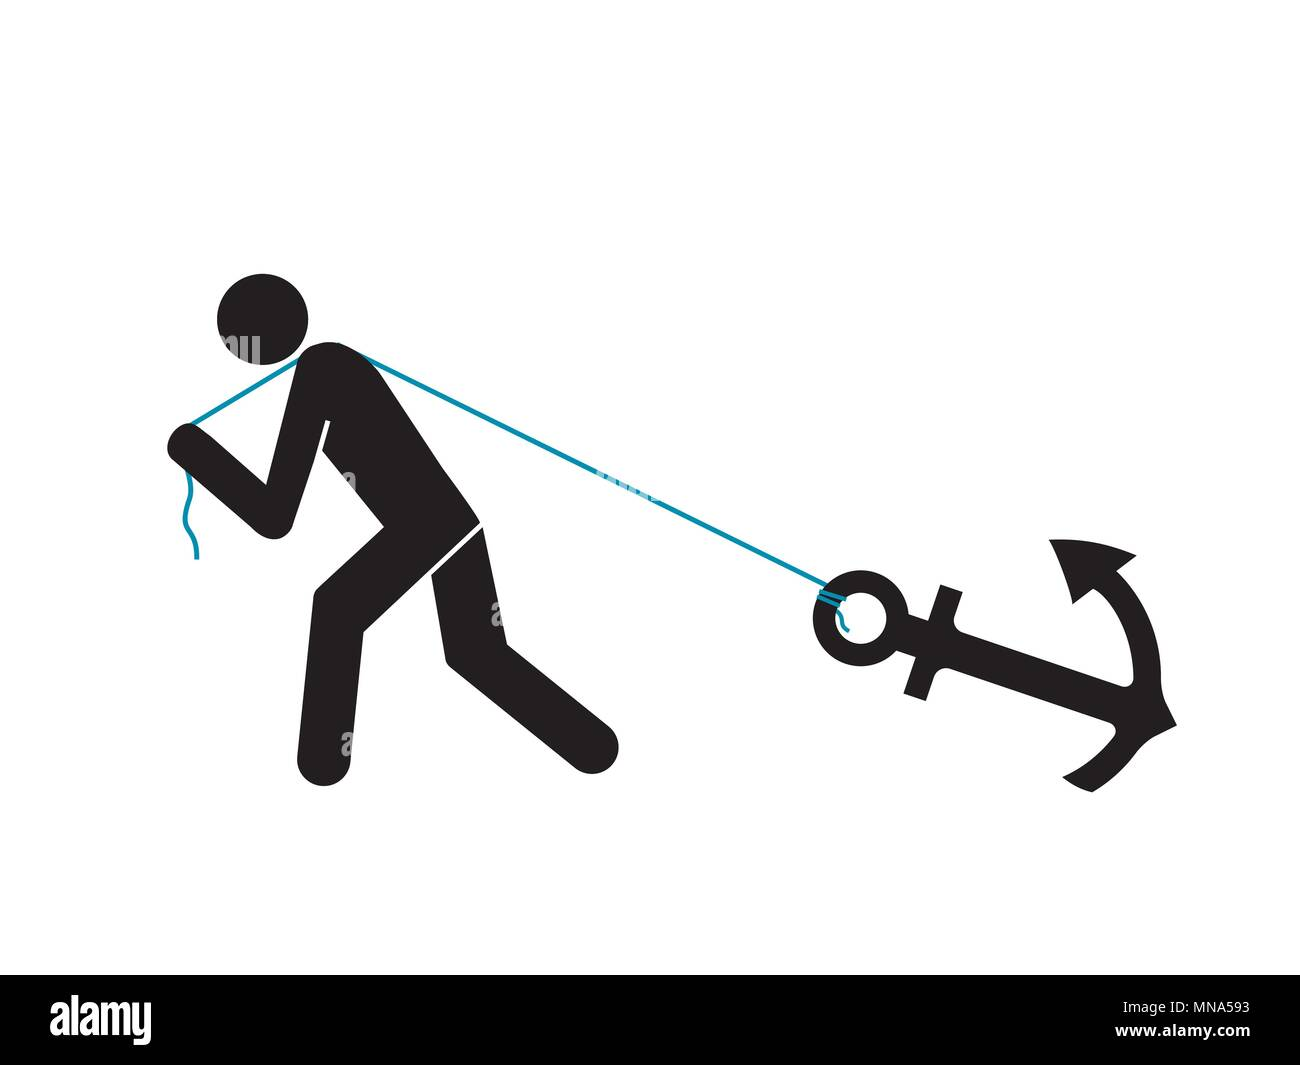 man gragging heavy anchor - Stock Vector